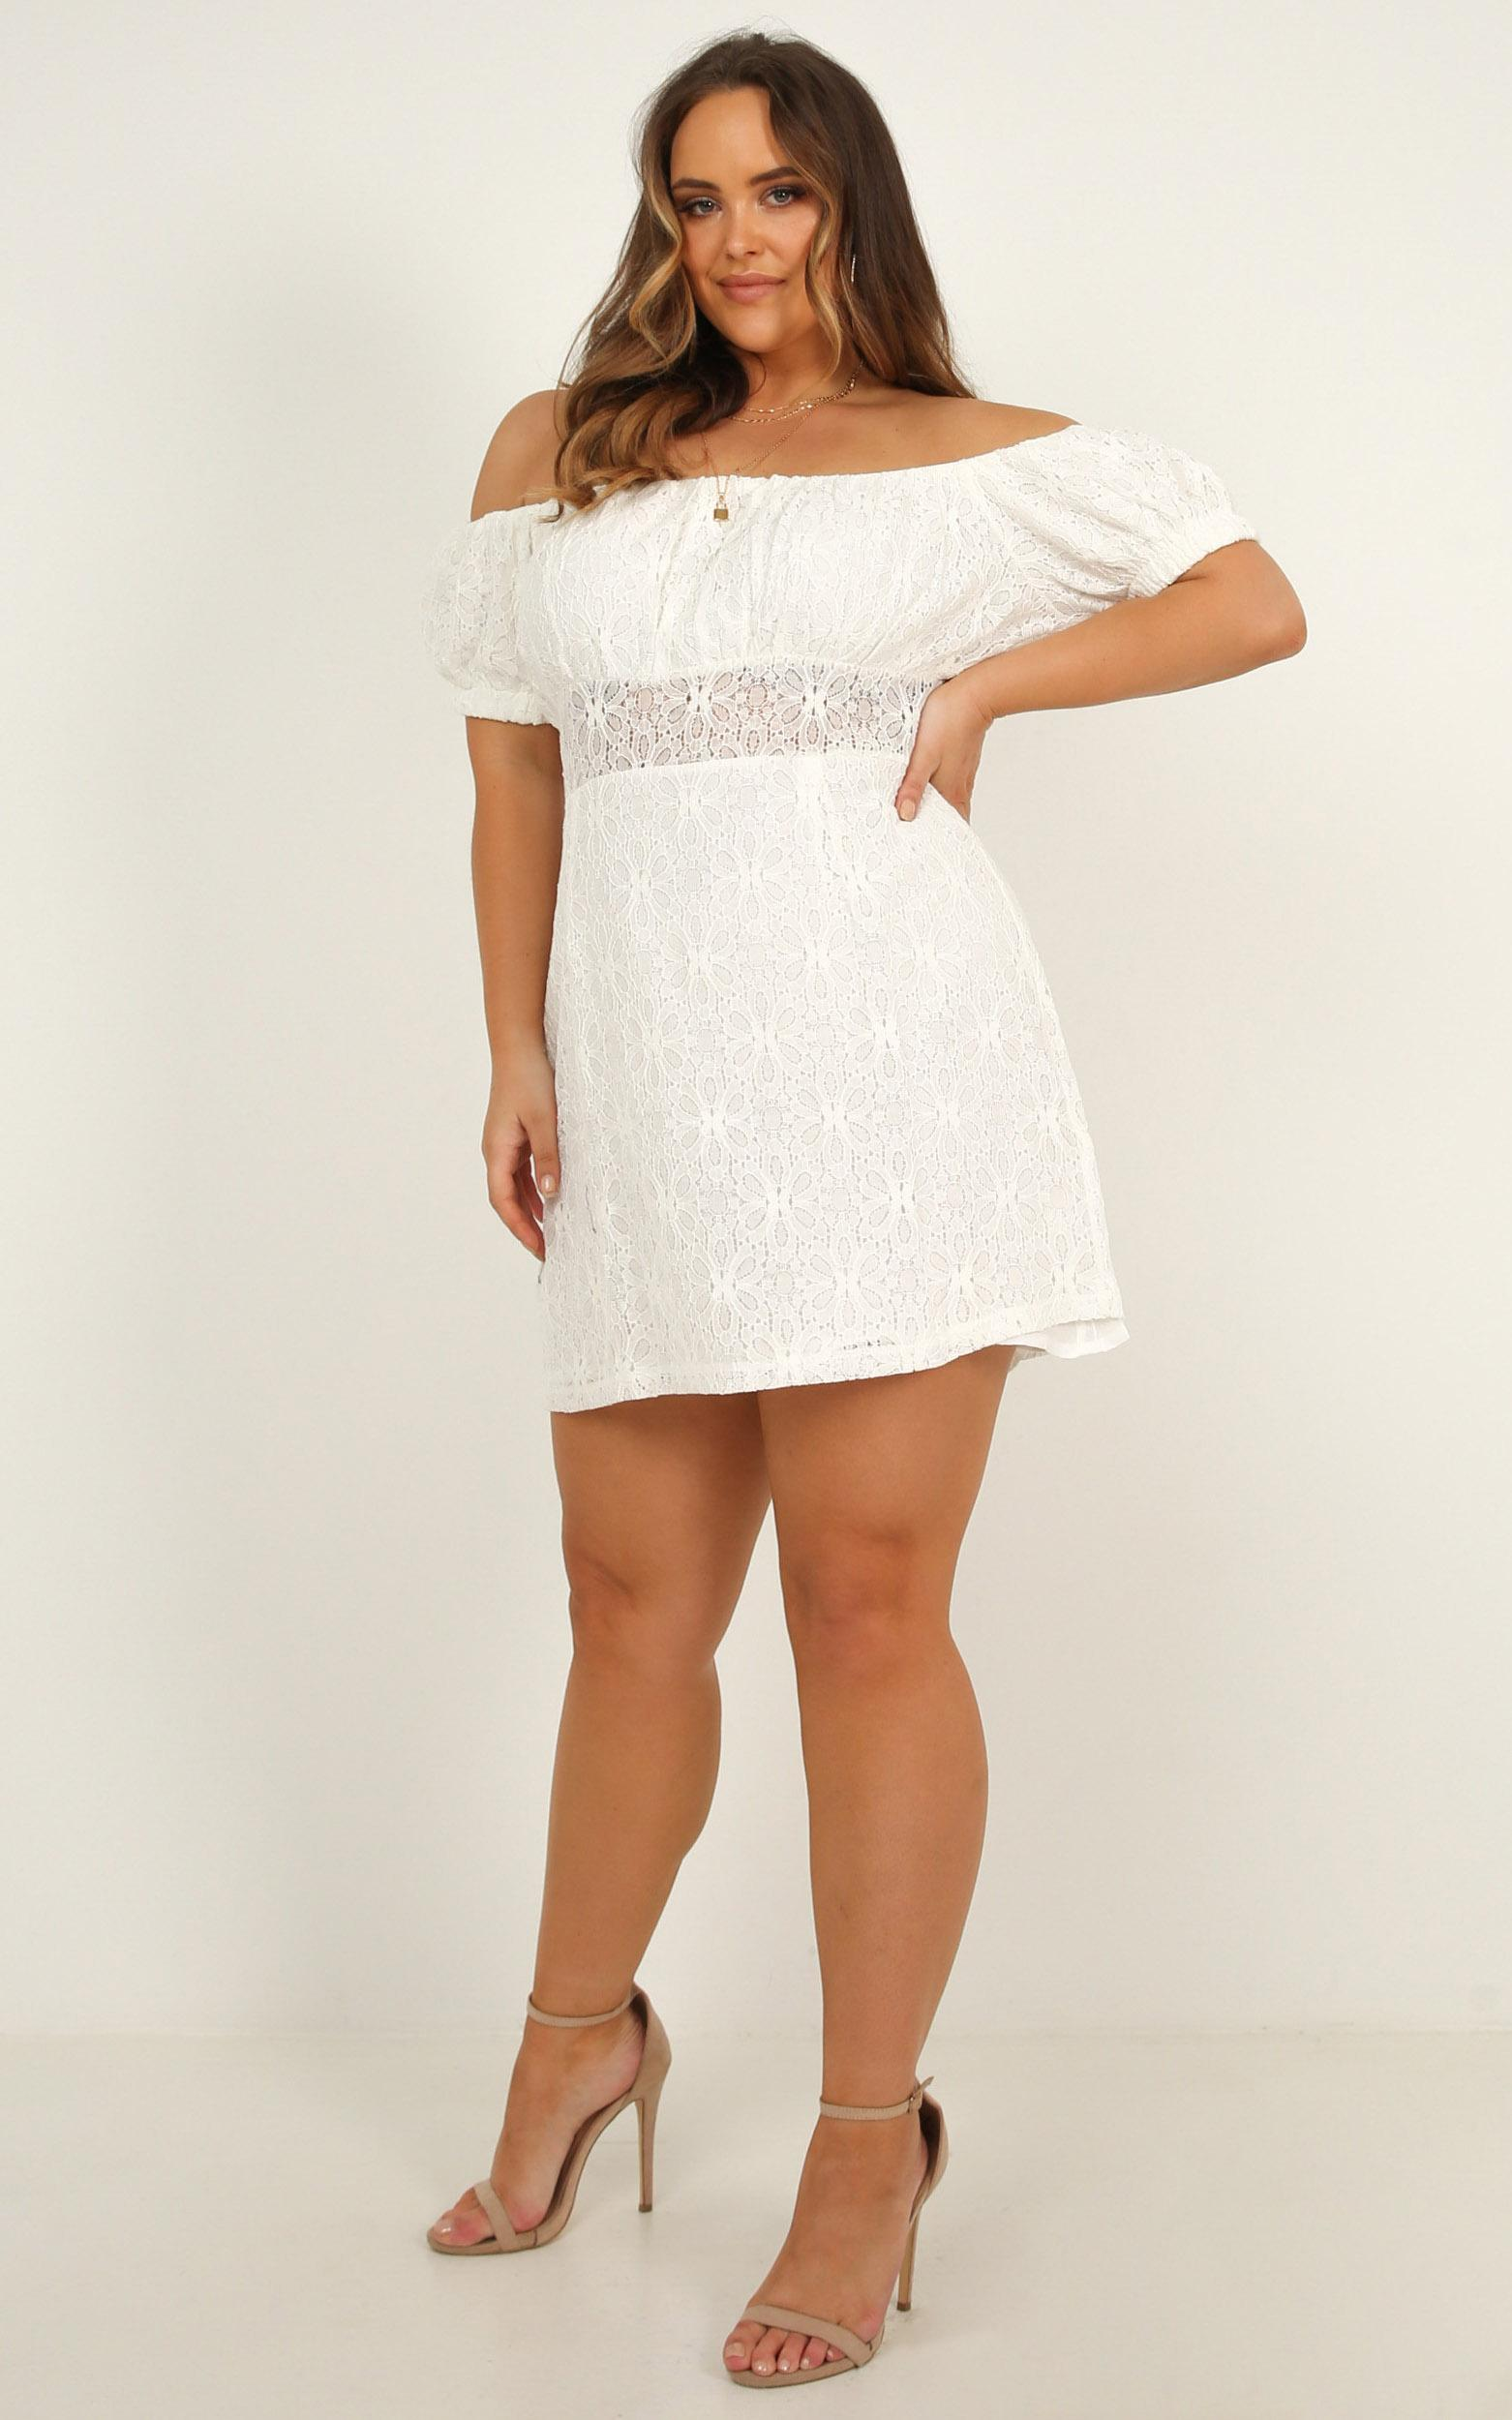 All My Girls Dress In white lace - 16 (XXL), White, hi-res image number null